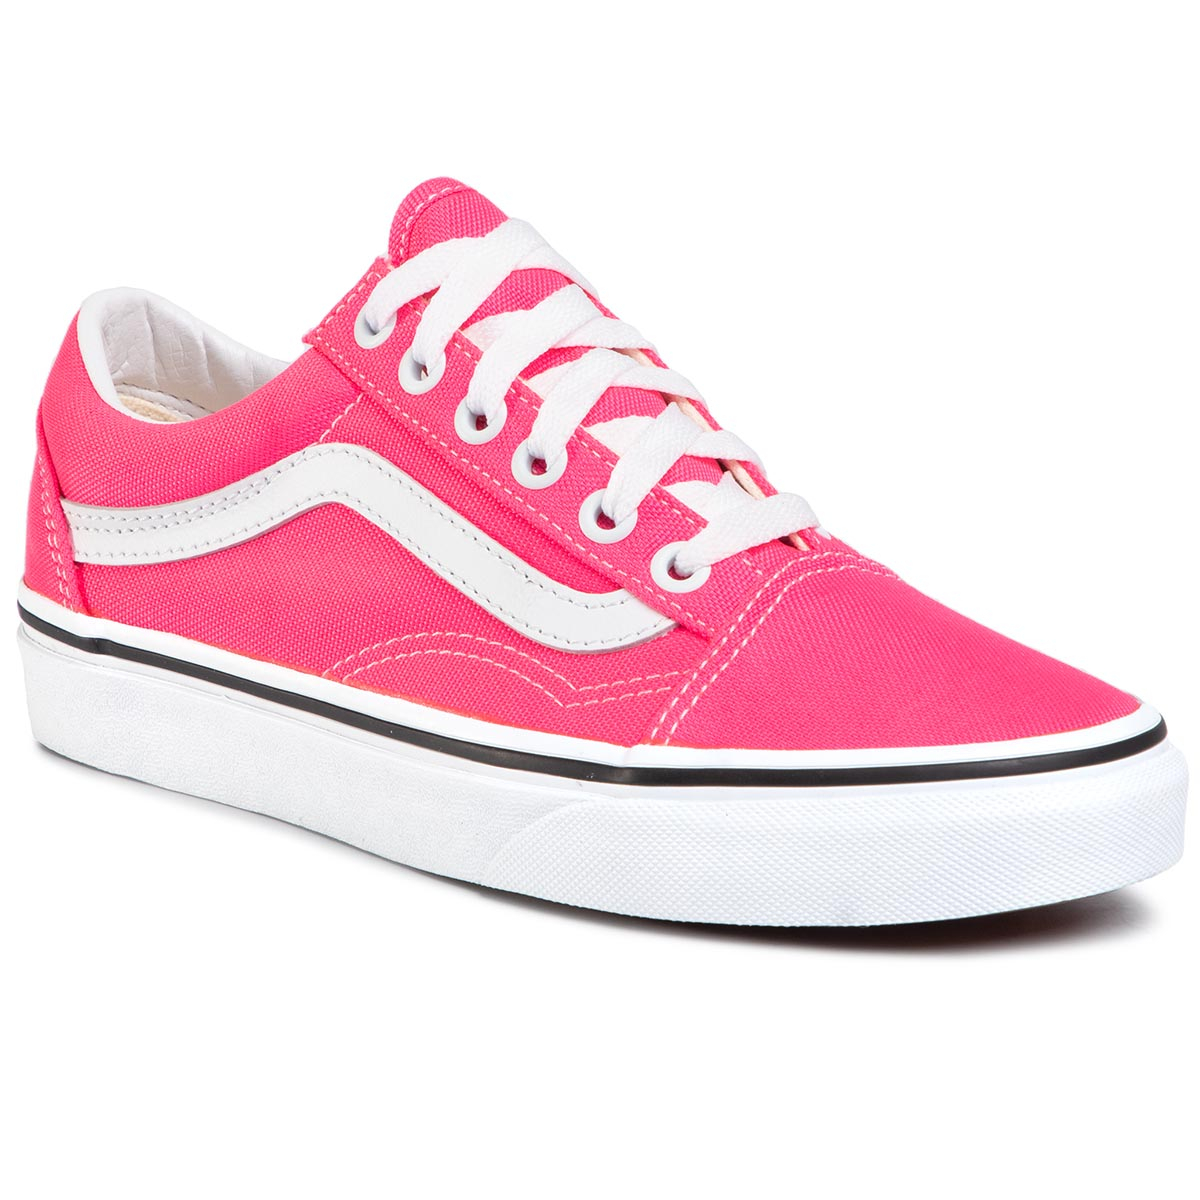 Teniși Vans - Old Skool Vn0a4u3bwt61 (Neon) Knockout Pnk/Tr Wht imagine epantofi.ro 2021